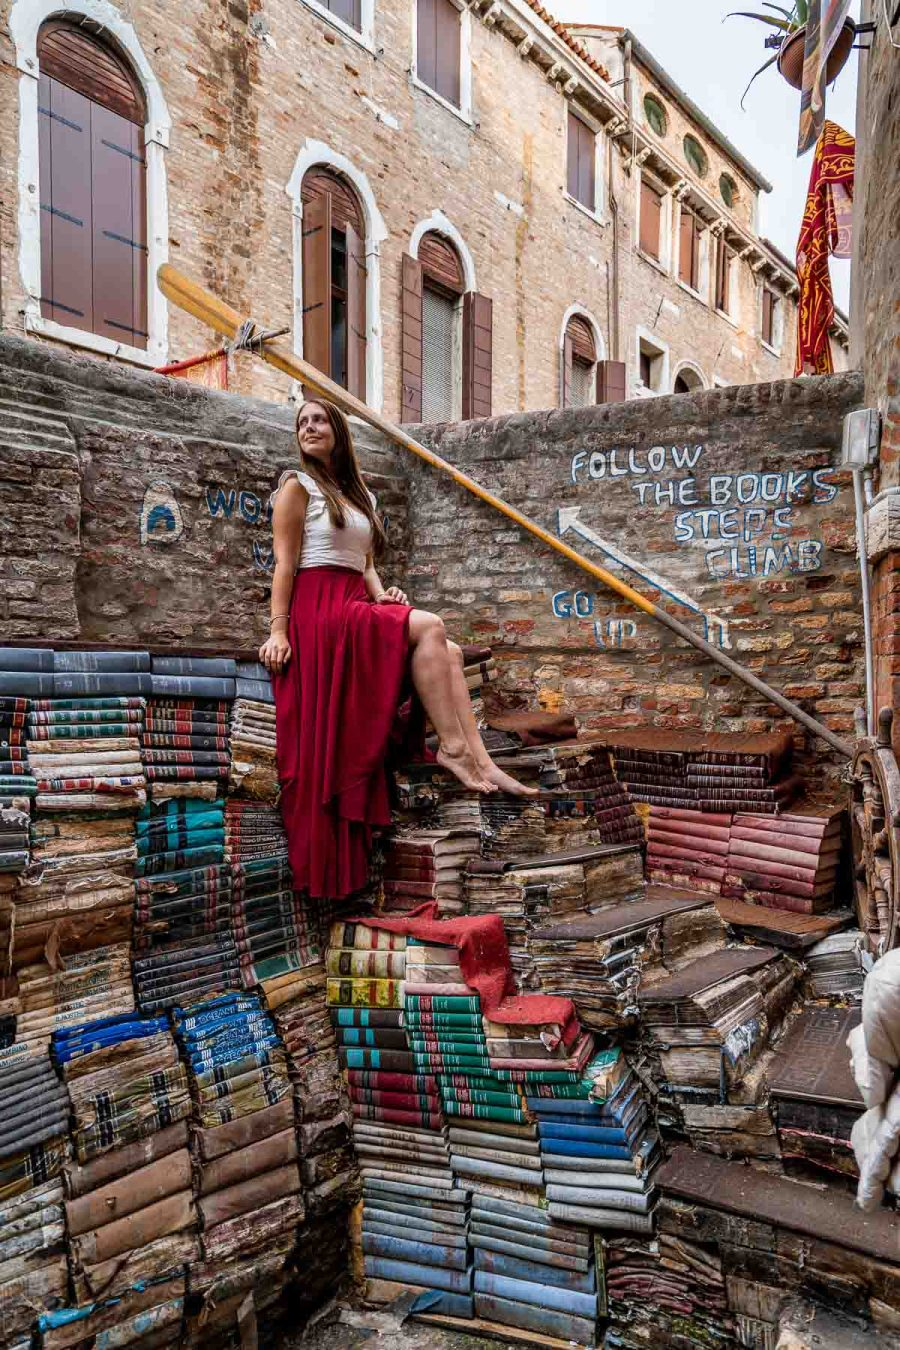 Girl in a red skirt sitting on top of the books at Libreria Acqua Alta in Venice, Italy